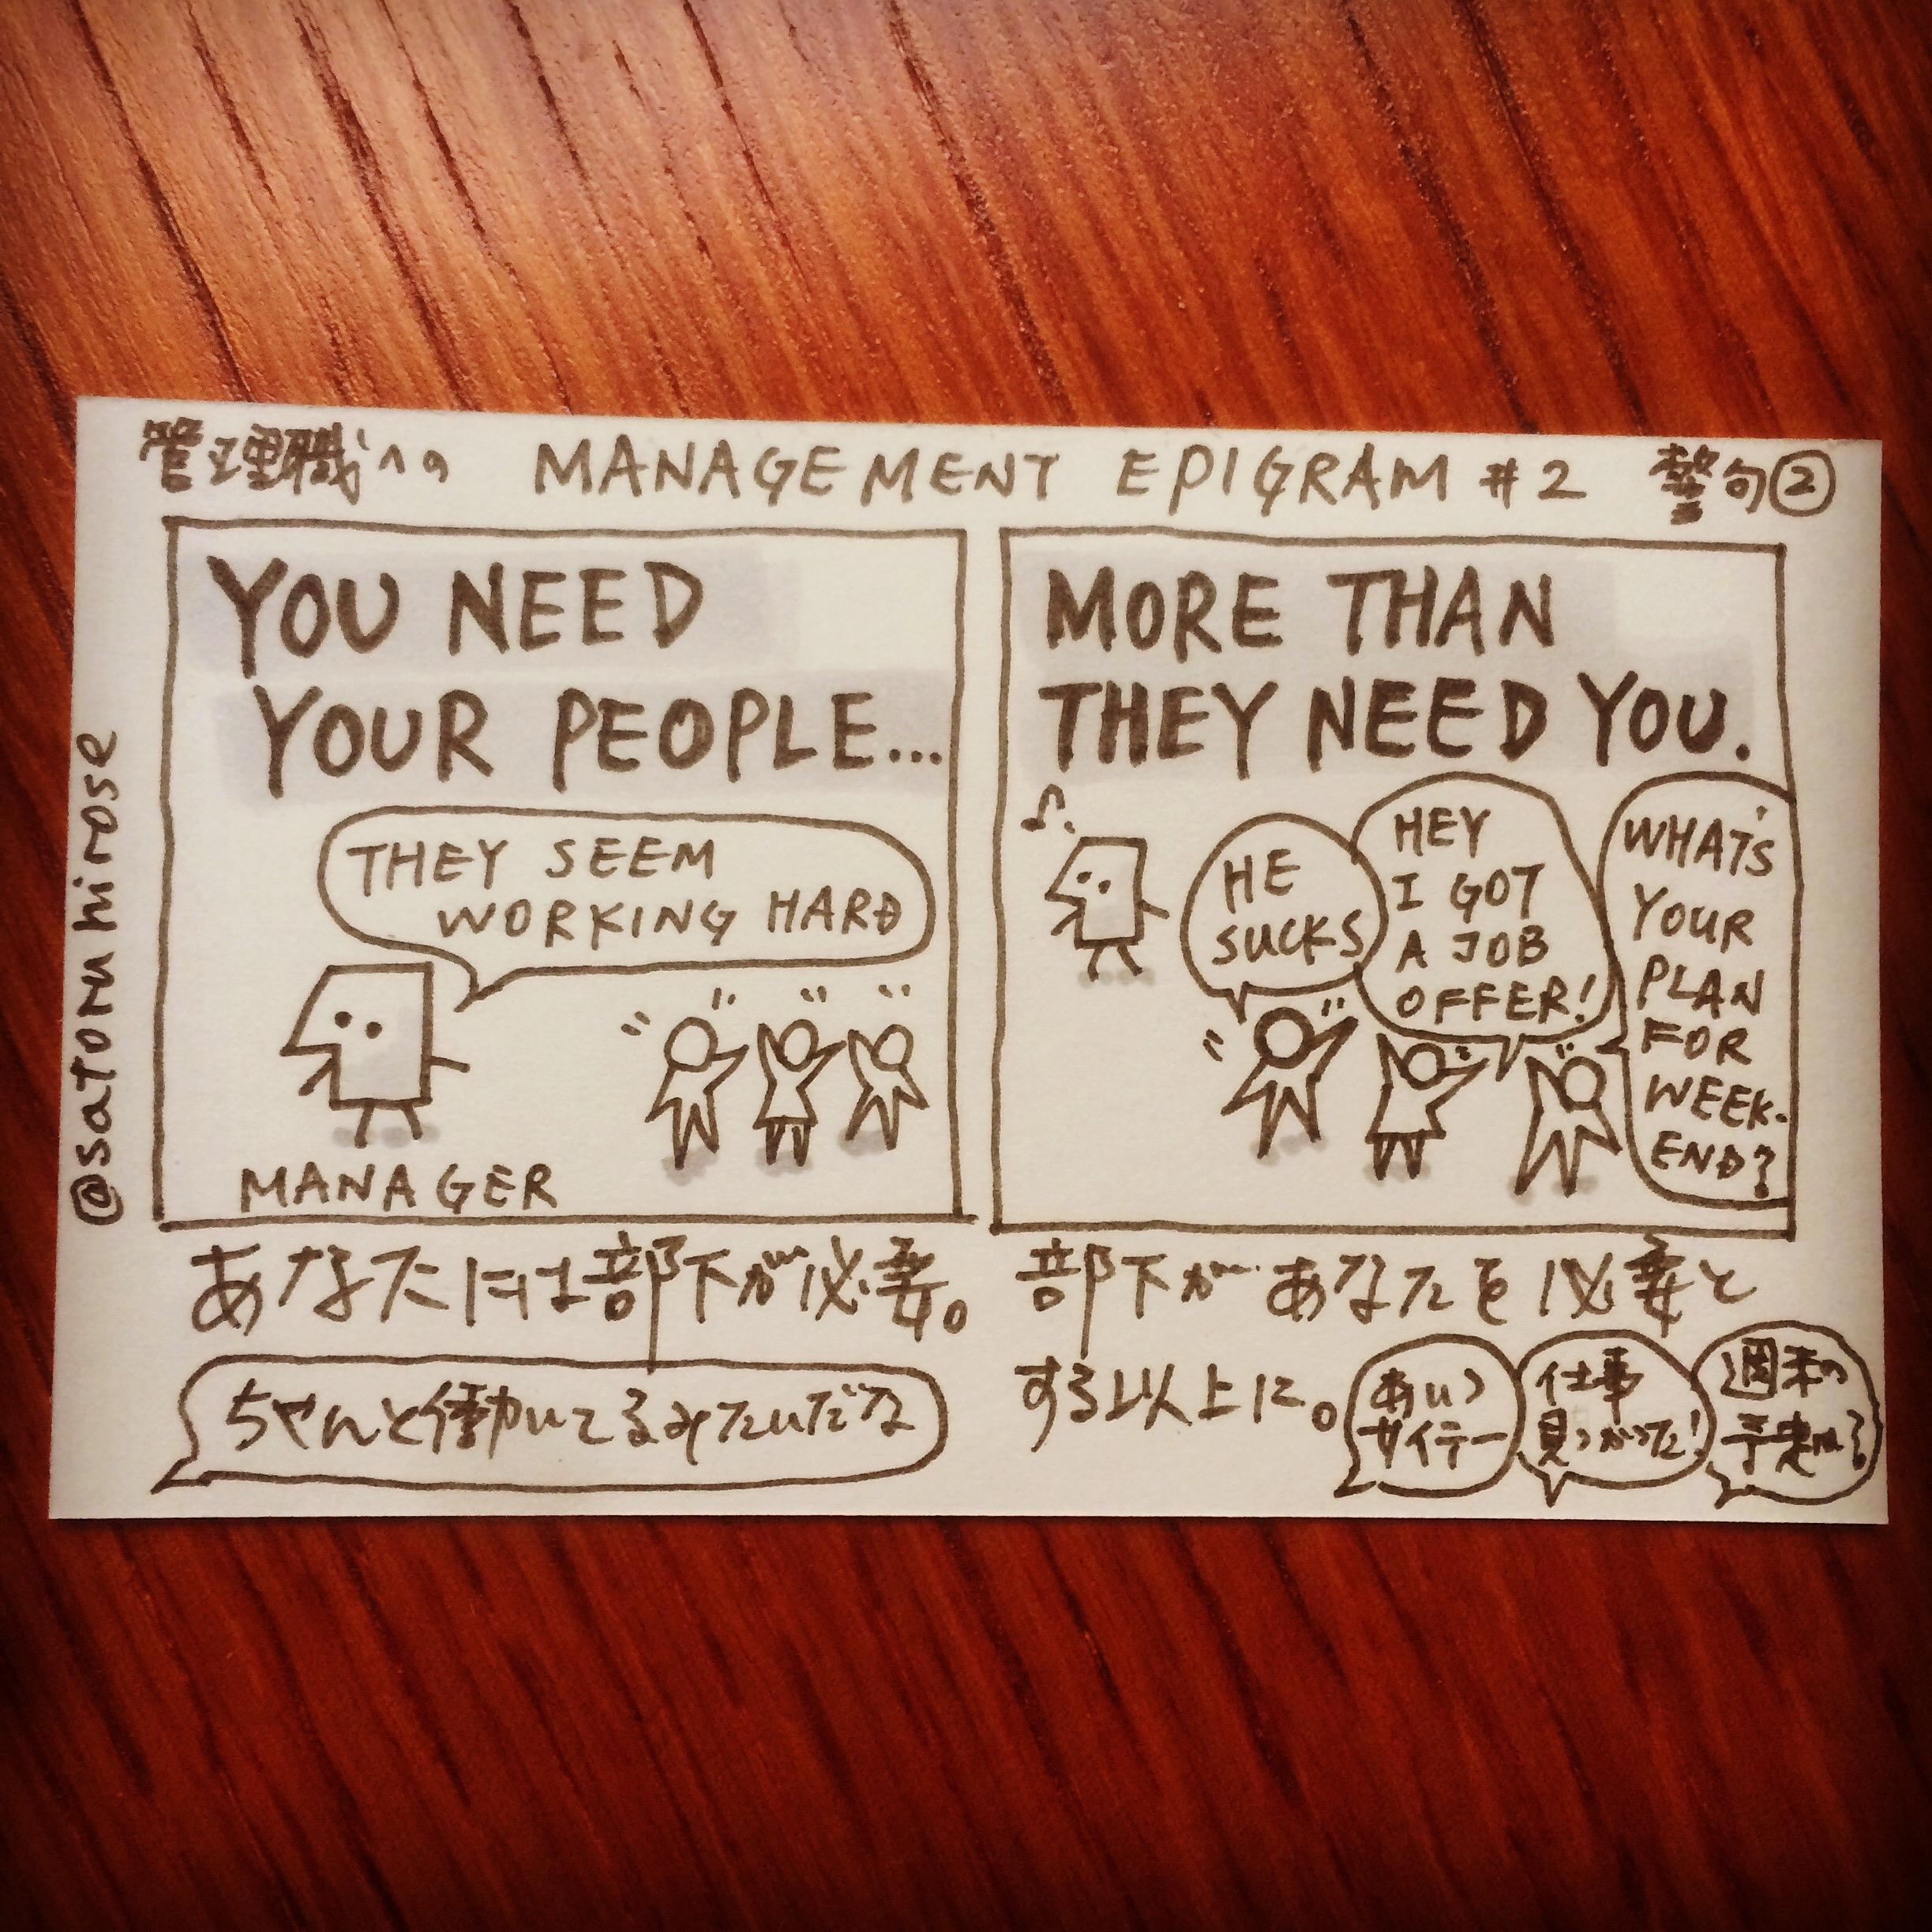 You need your people more than they need you.